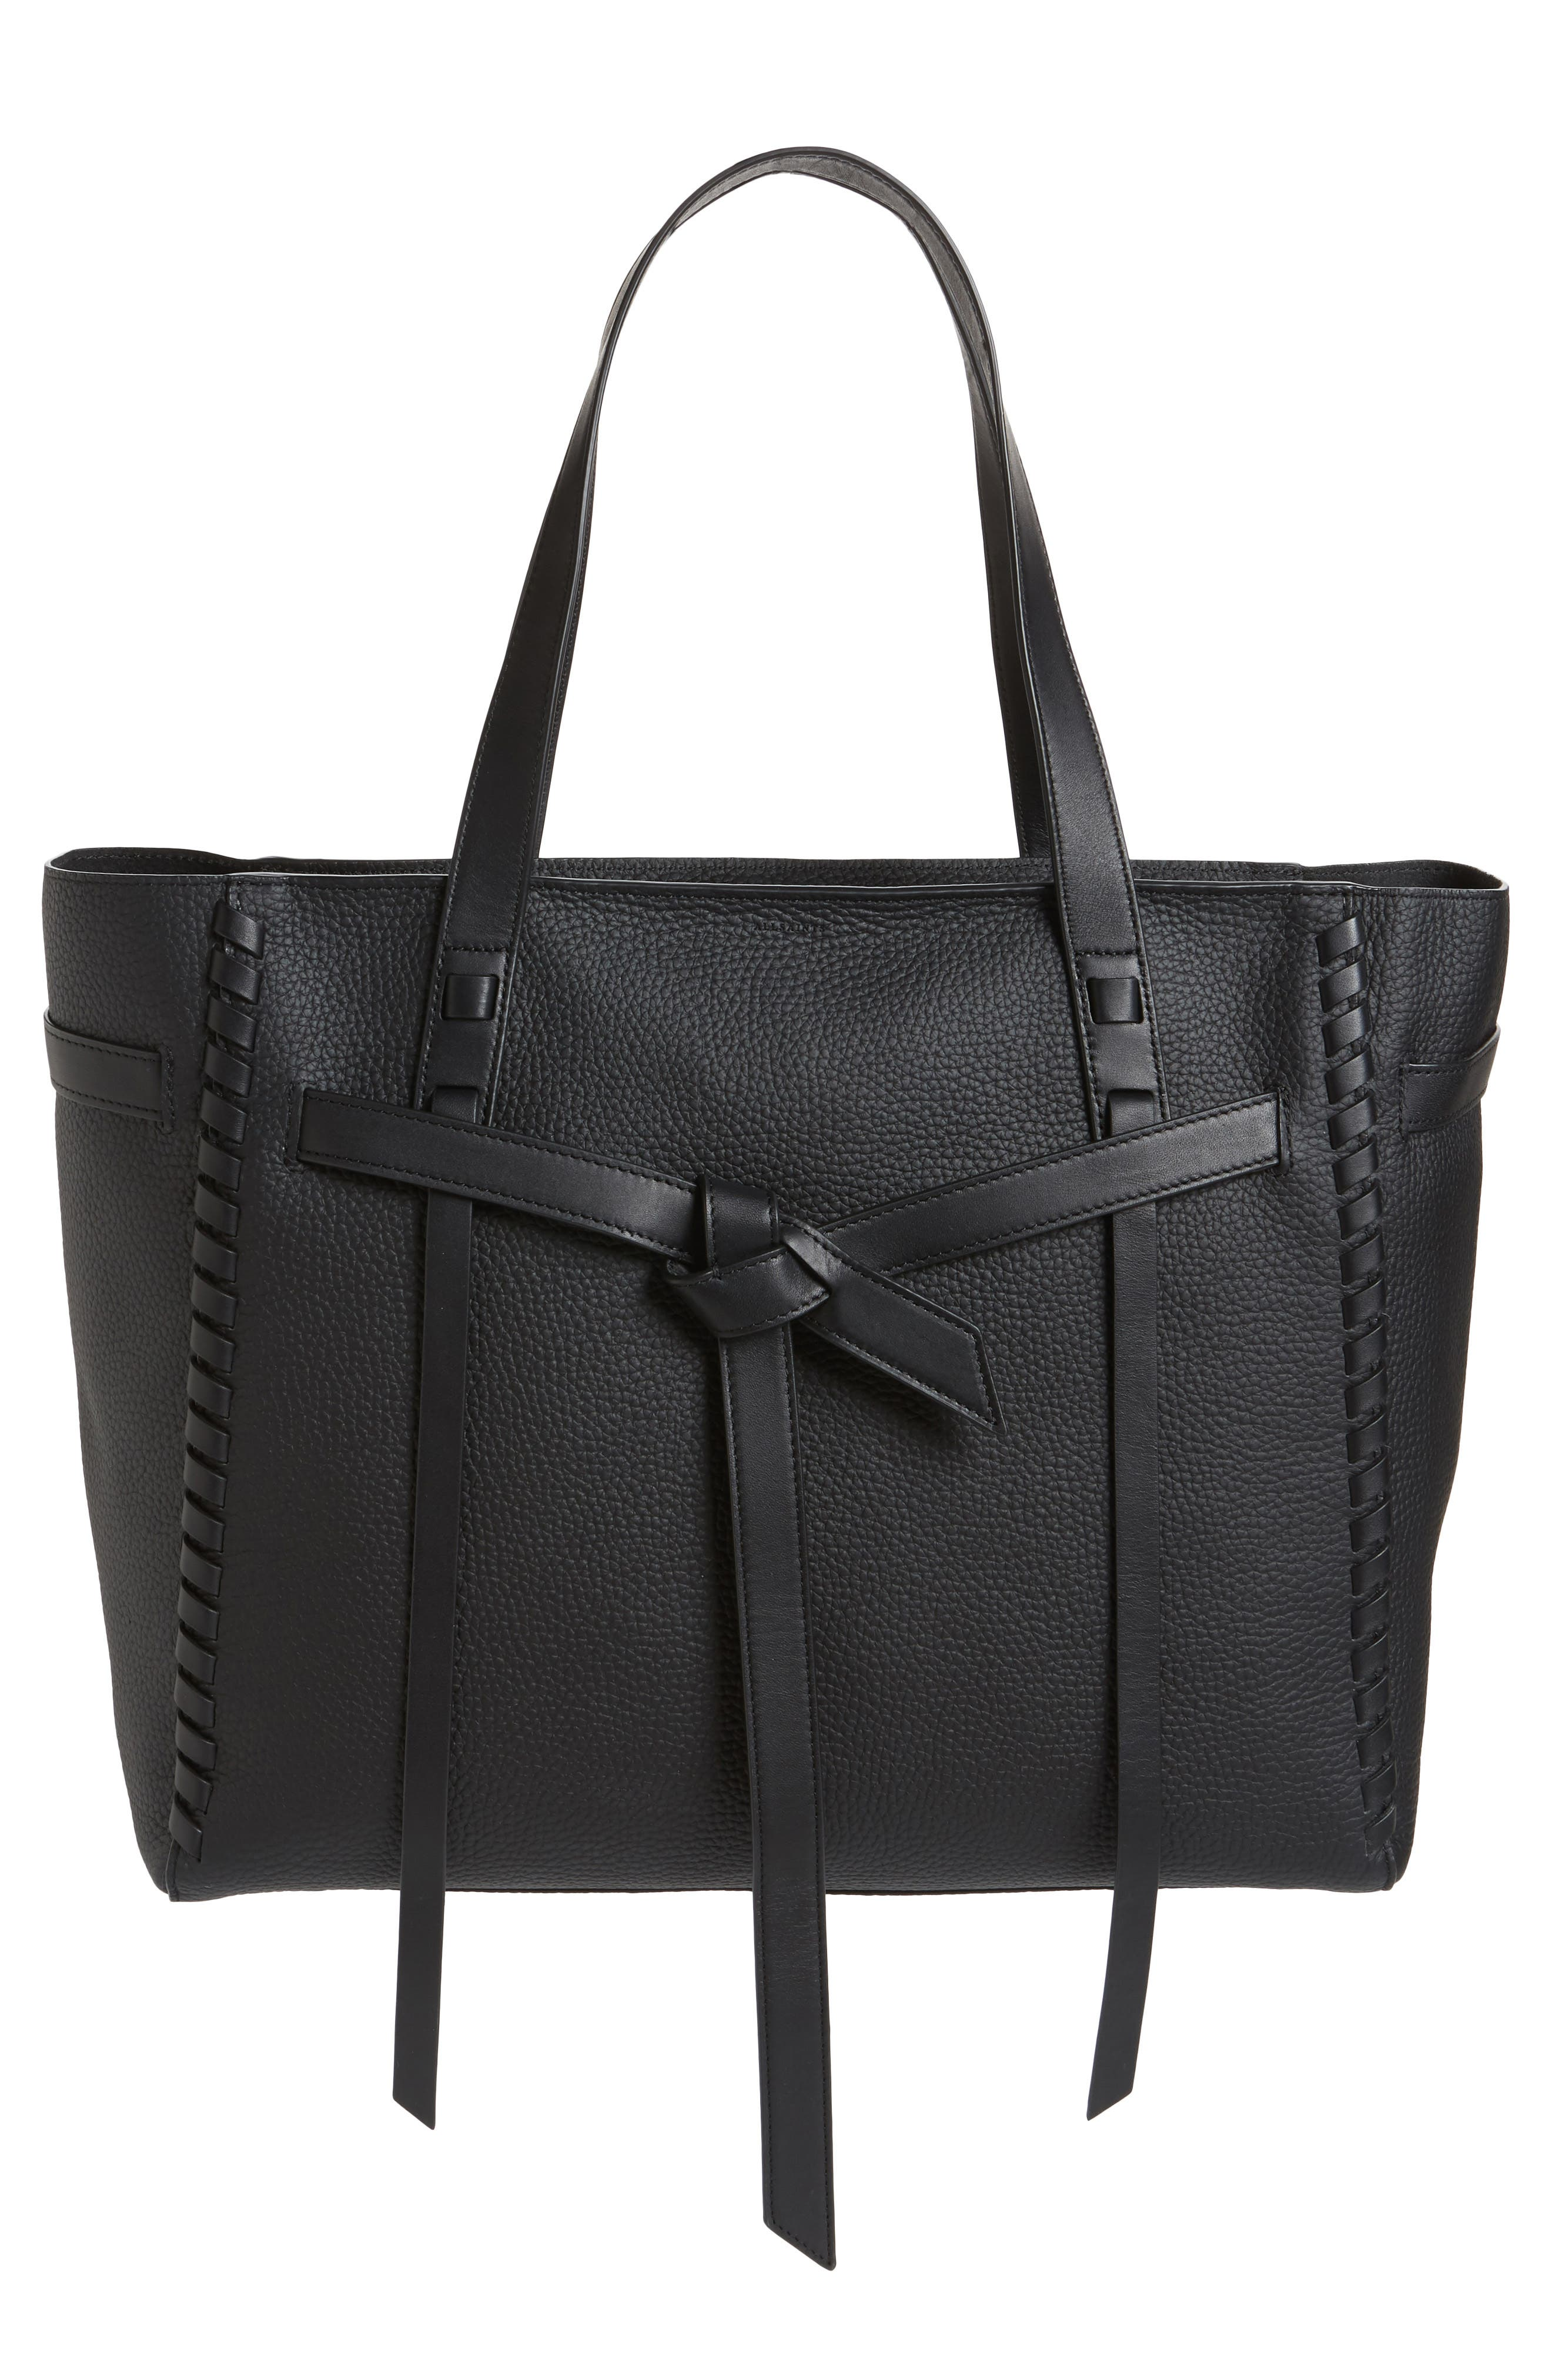 CAMI EAST/WEST LEATHER TOTE - BLACK